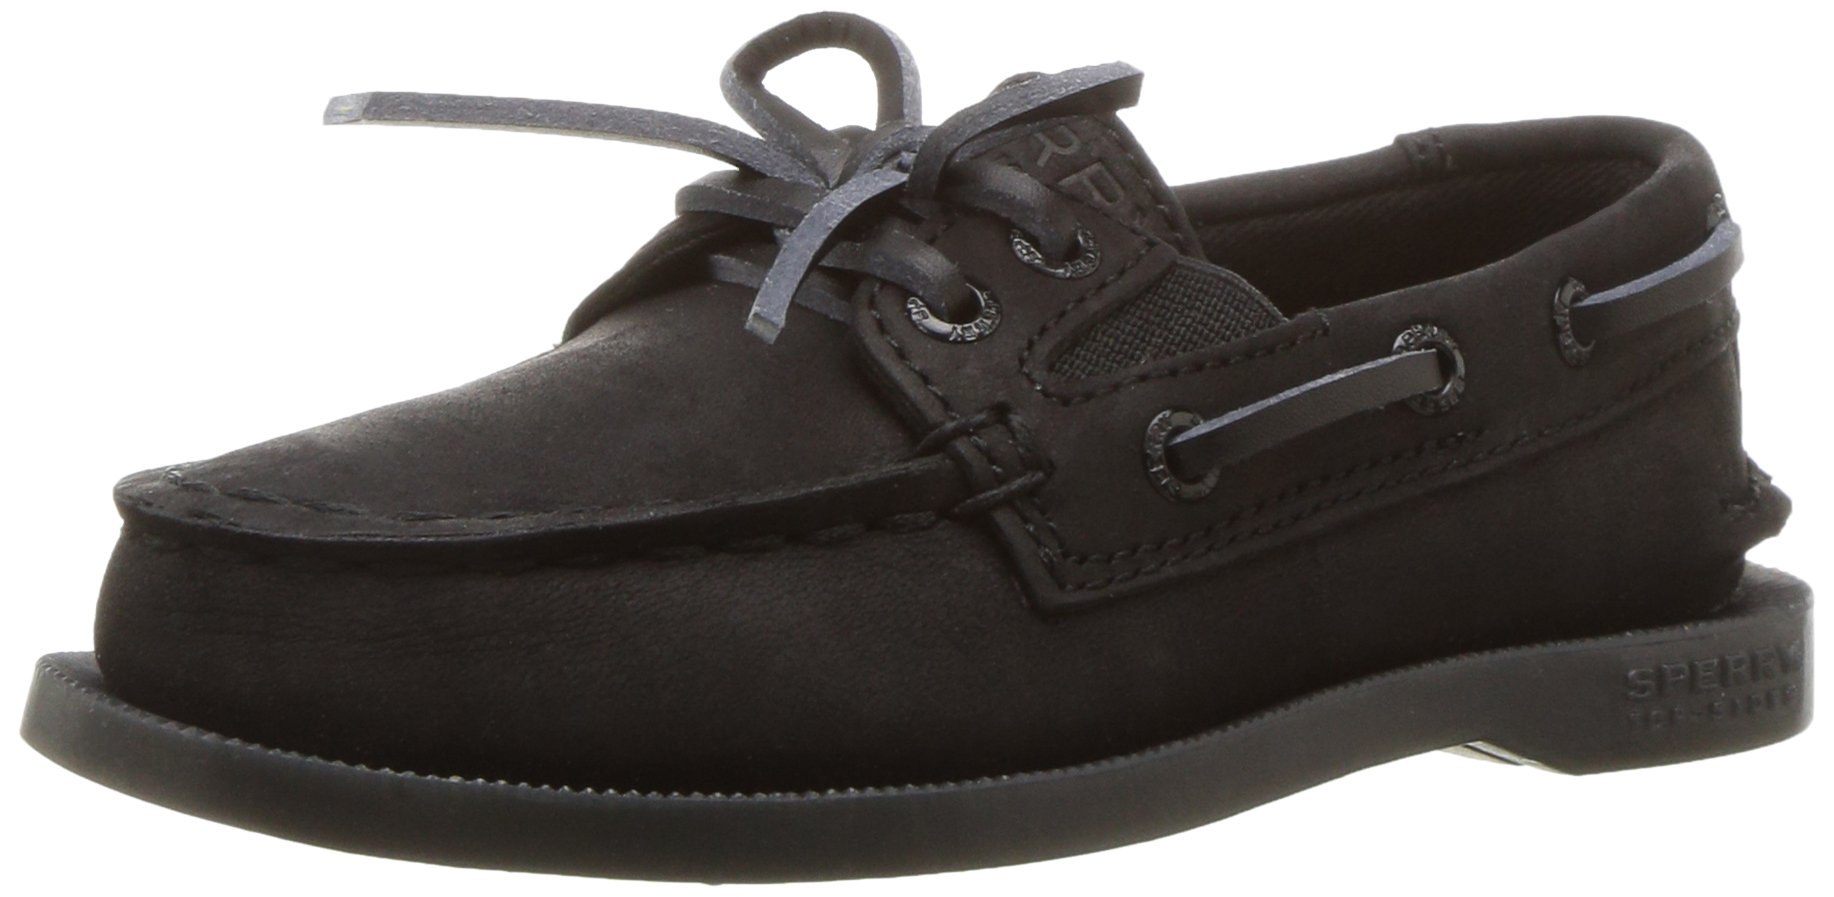 Sperry Authentic Original Slip On Boat Shoe (Toddler/Little Kid/Big Kid), Black, 5 M US Toddler by SPERRY